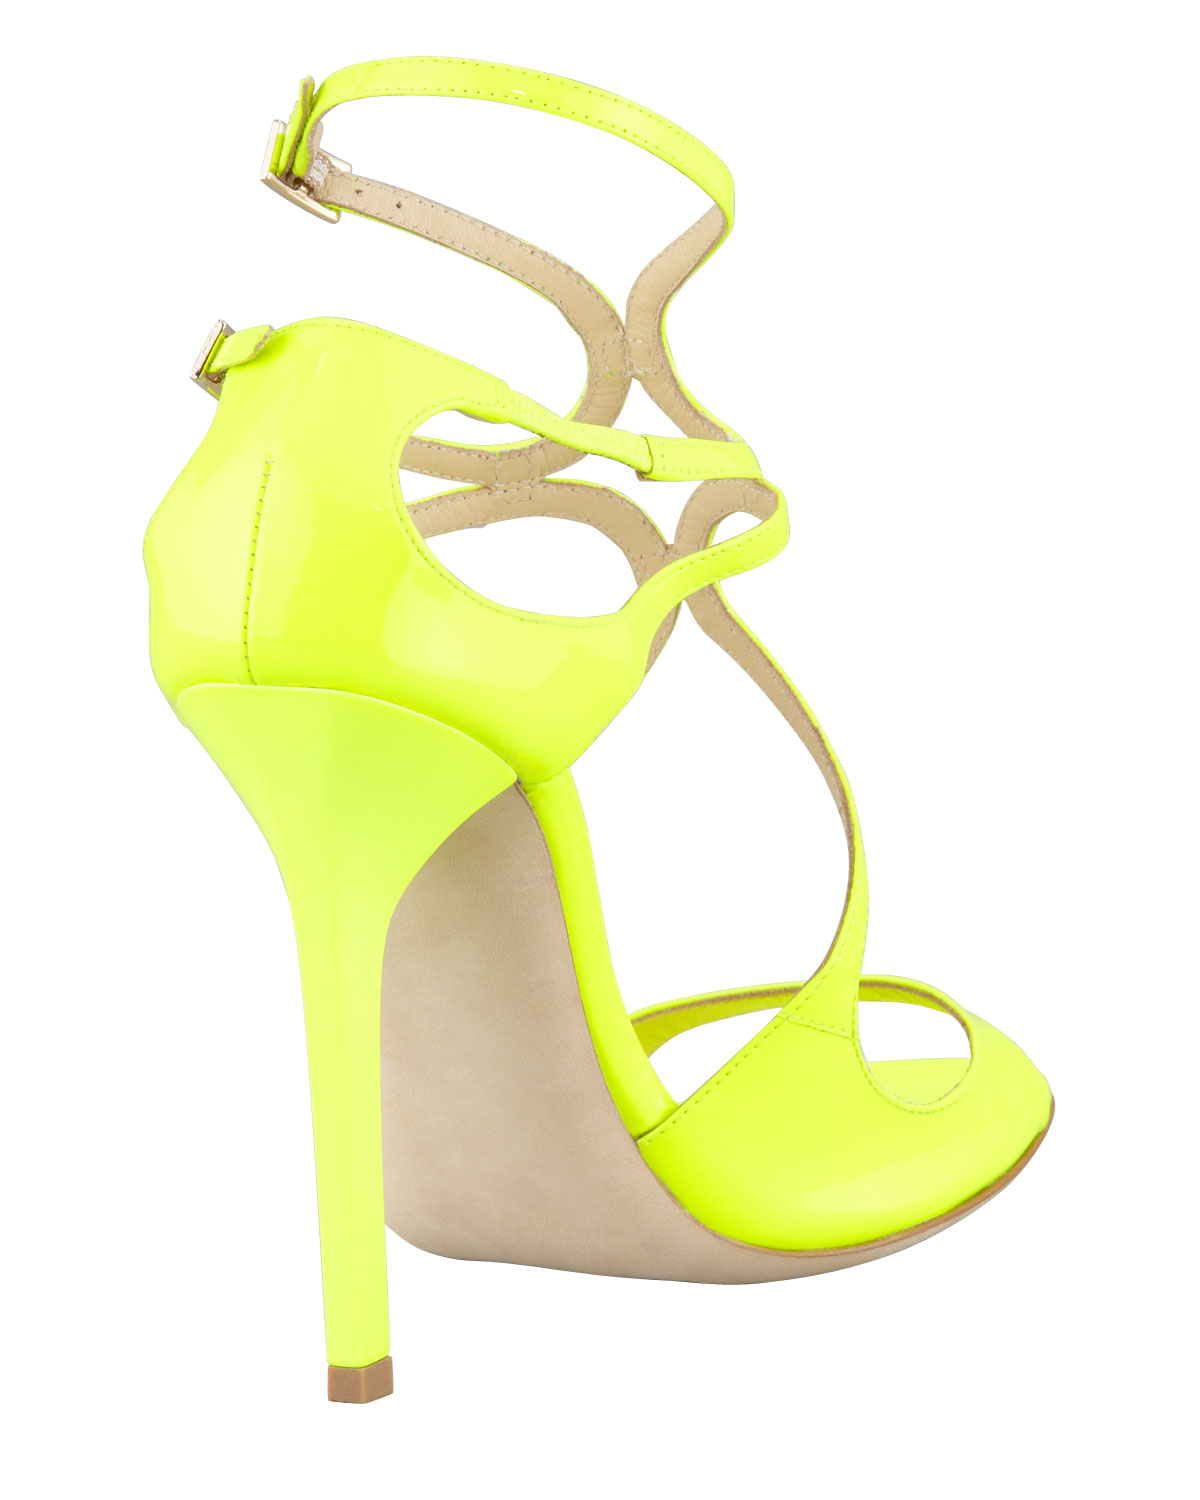 Jimmy choo Lang Patent Strappy Sandal Yellow in Yellow | Lyst